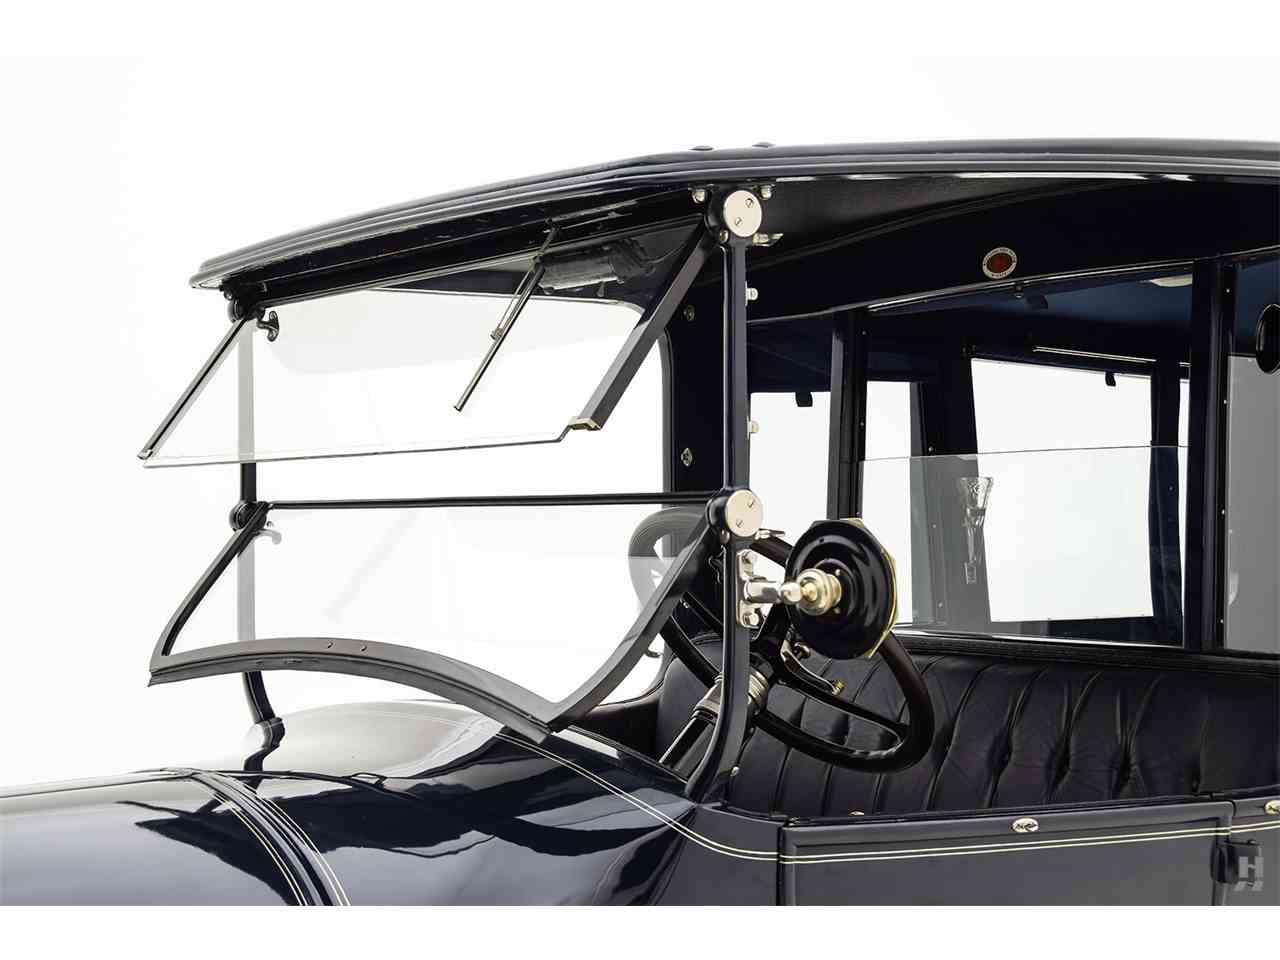 Large Picture of Classic 1924 Model 48 - $119,500.00 Offered by Hyman Ltd. Classic Cars - LDV9